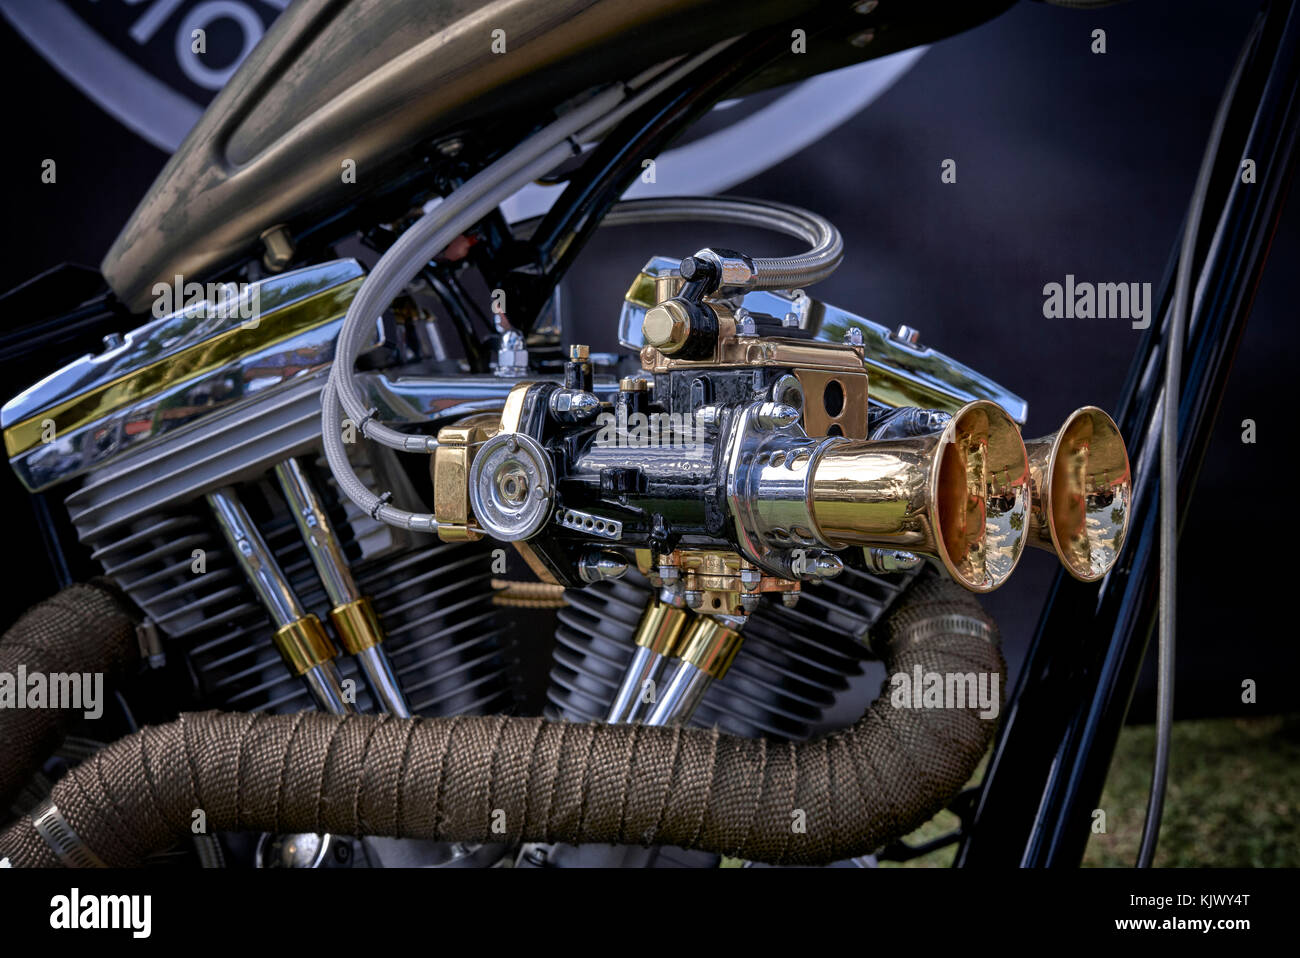 Ram pipes and Carburettor detail of a custom Harley Davidson chopper Motorcycle closeup. - Stock Image